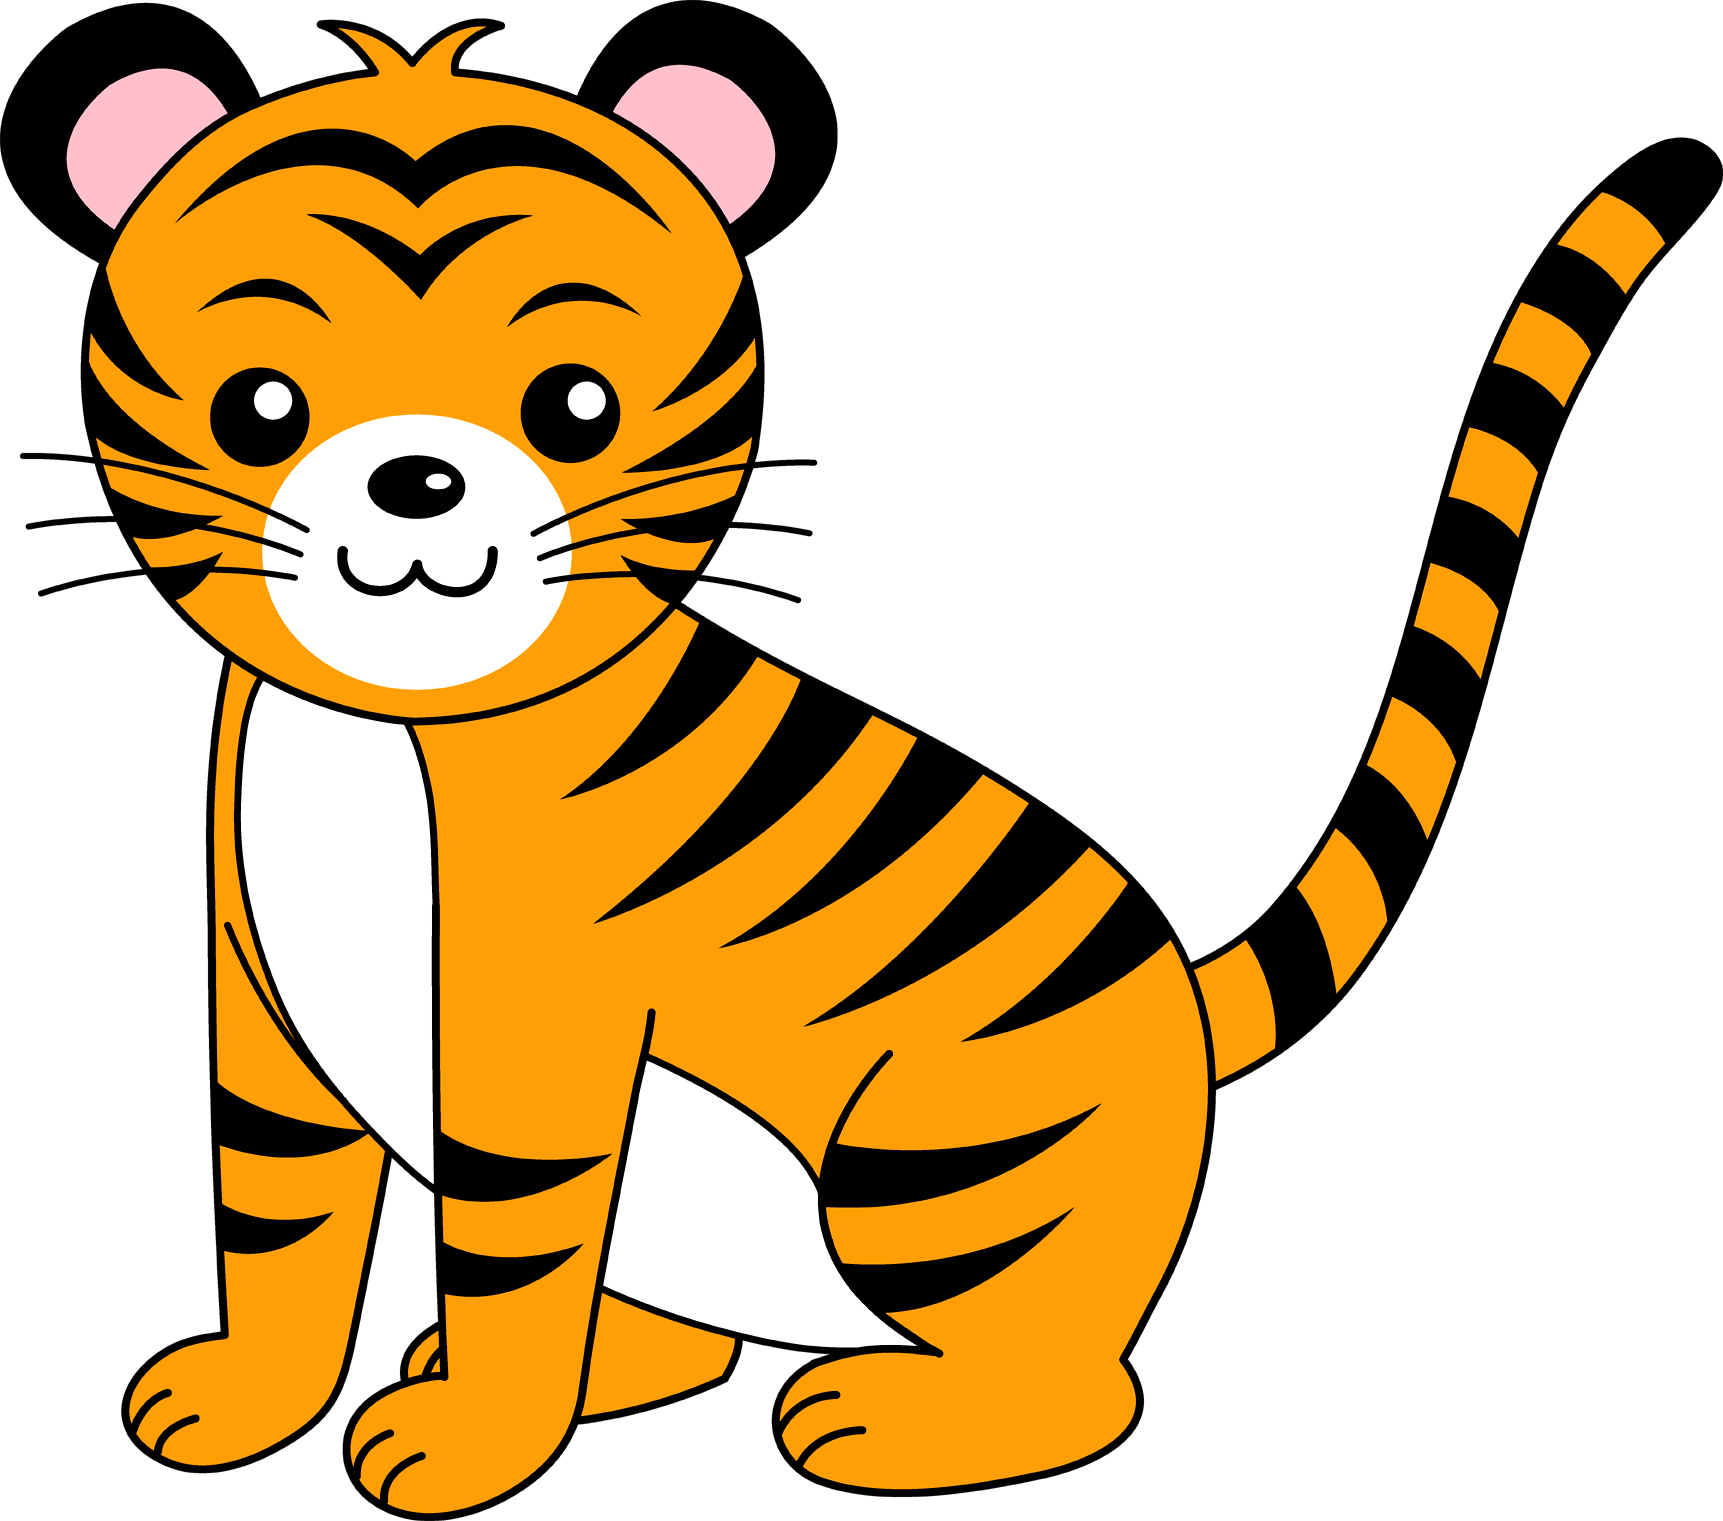 Transparent background tiger clipart vector free download Transparent Clipart Image cub tiger clipart - Free ... vector free download